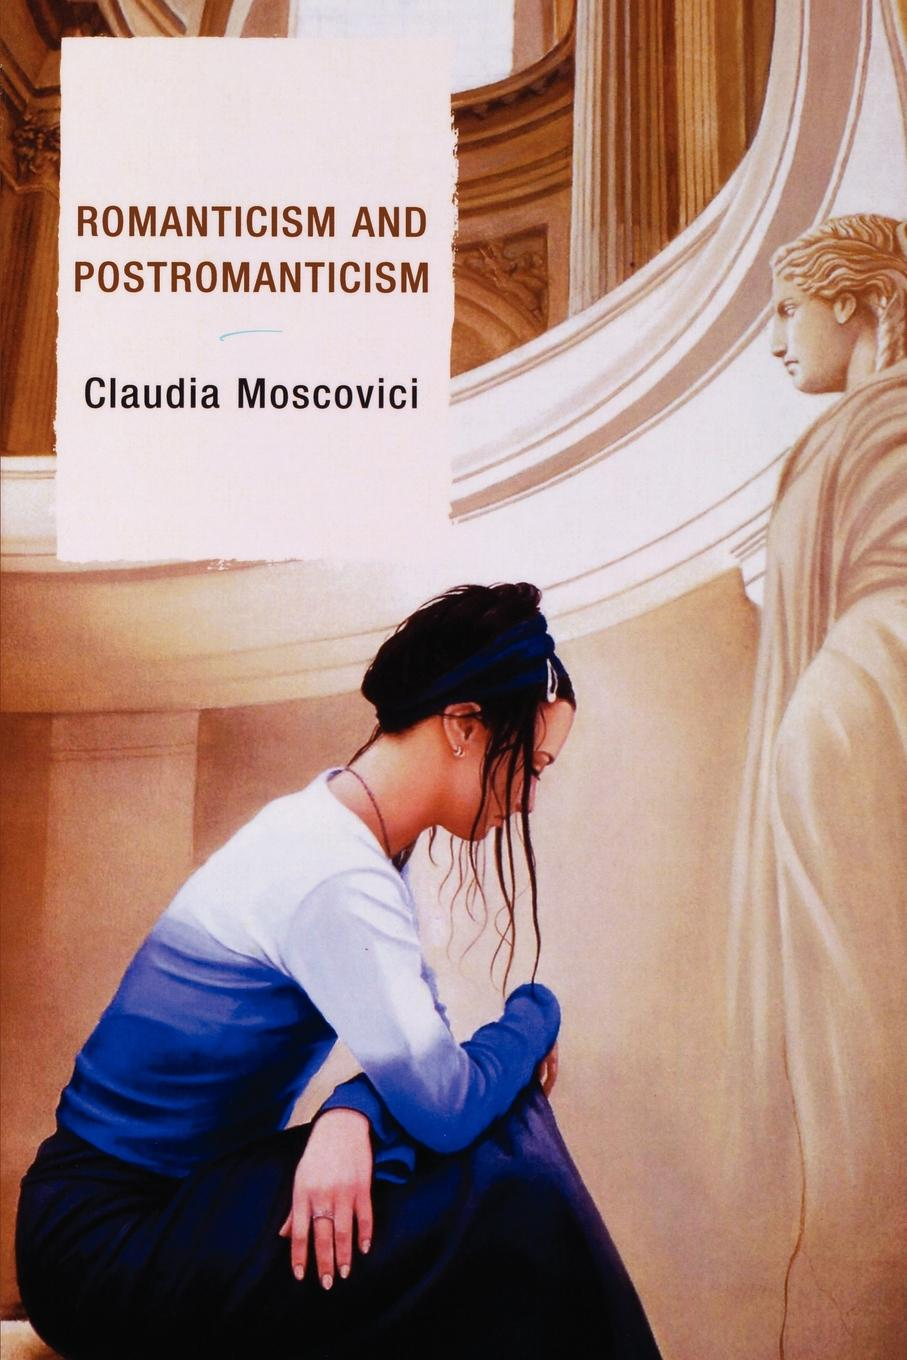 Romanticism and Postromanticism By: Claudia Moscovici